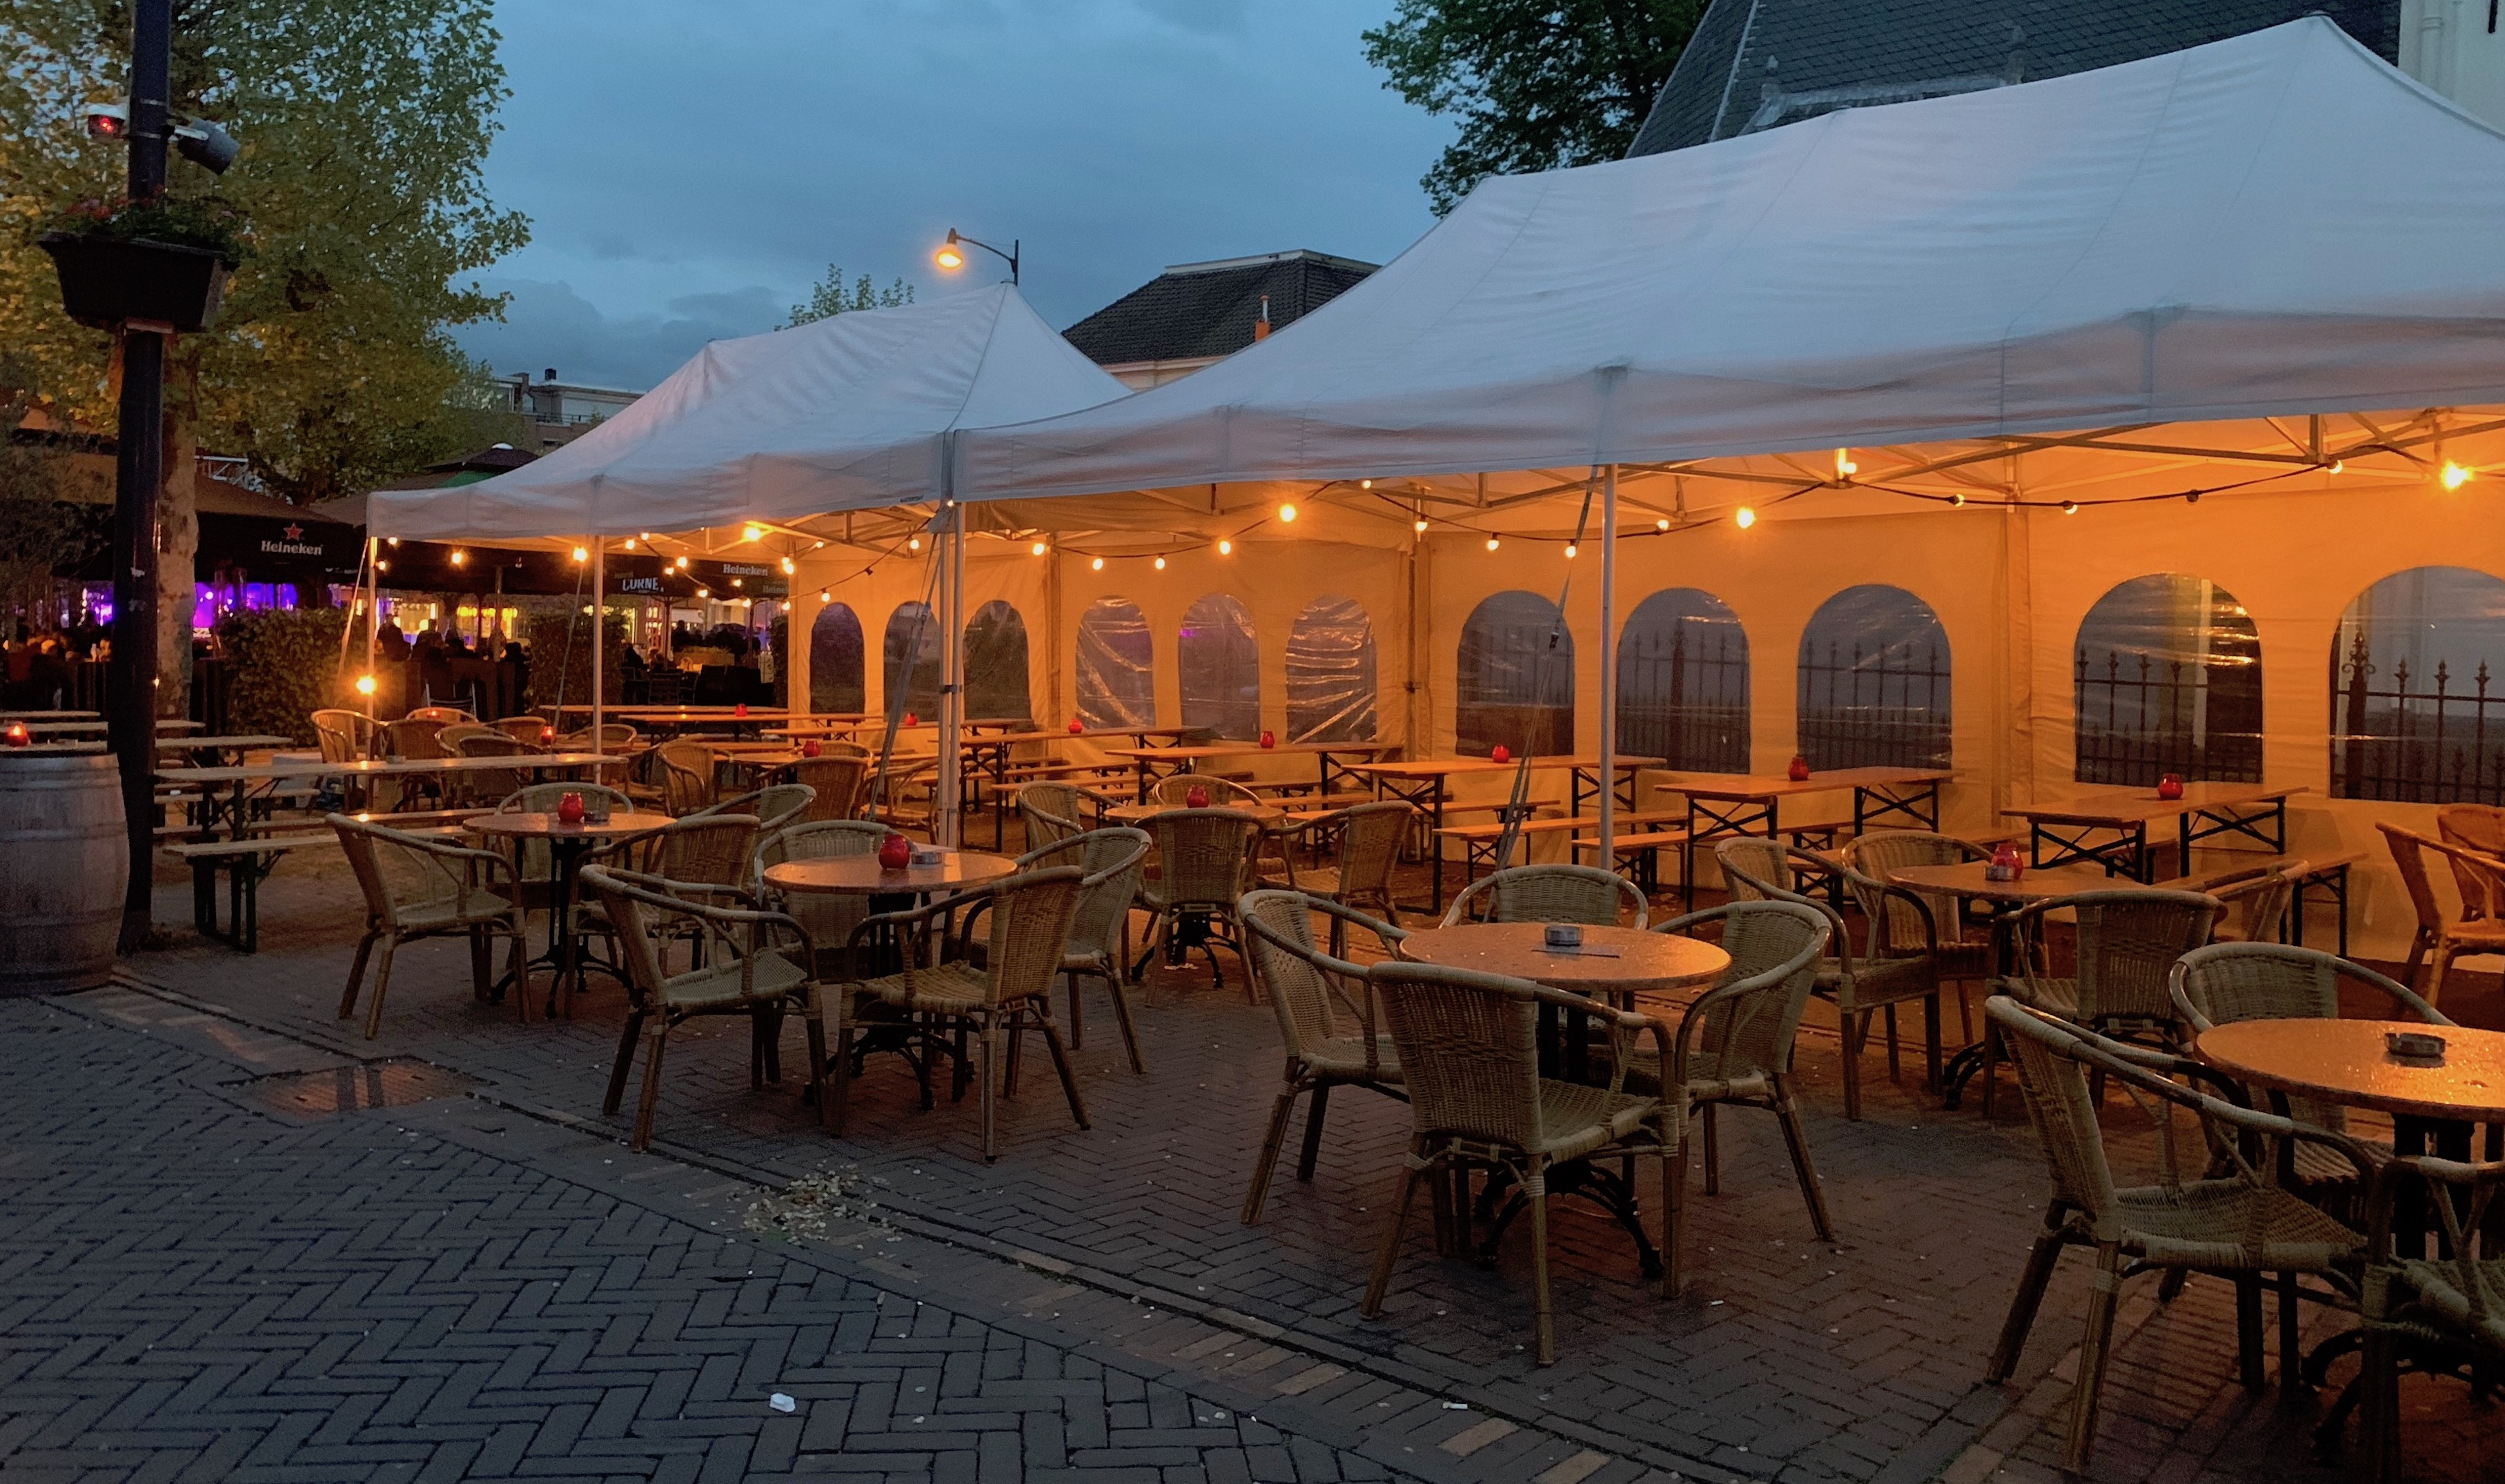 Tent markt